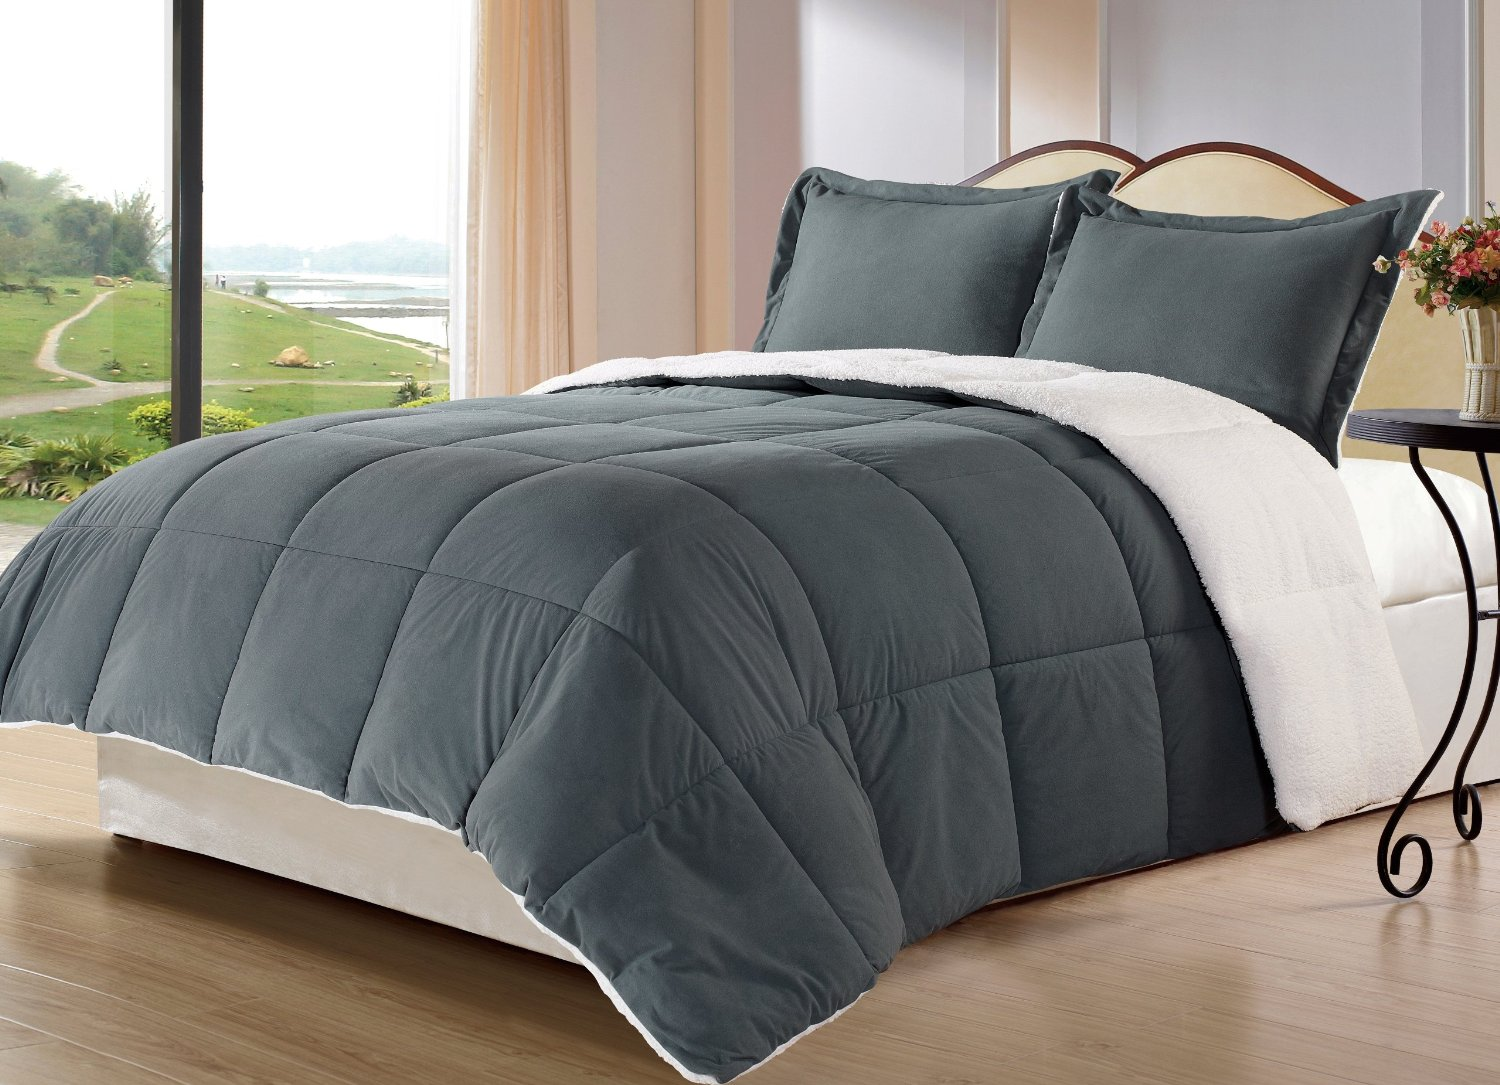 reviews king collection micromink comforter sherpa down review piece reversible alternative chezmoi set